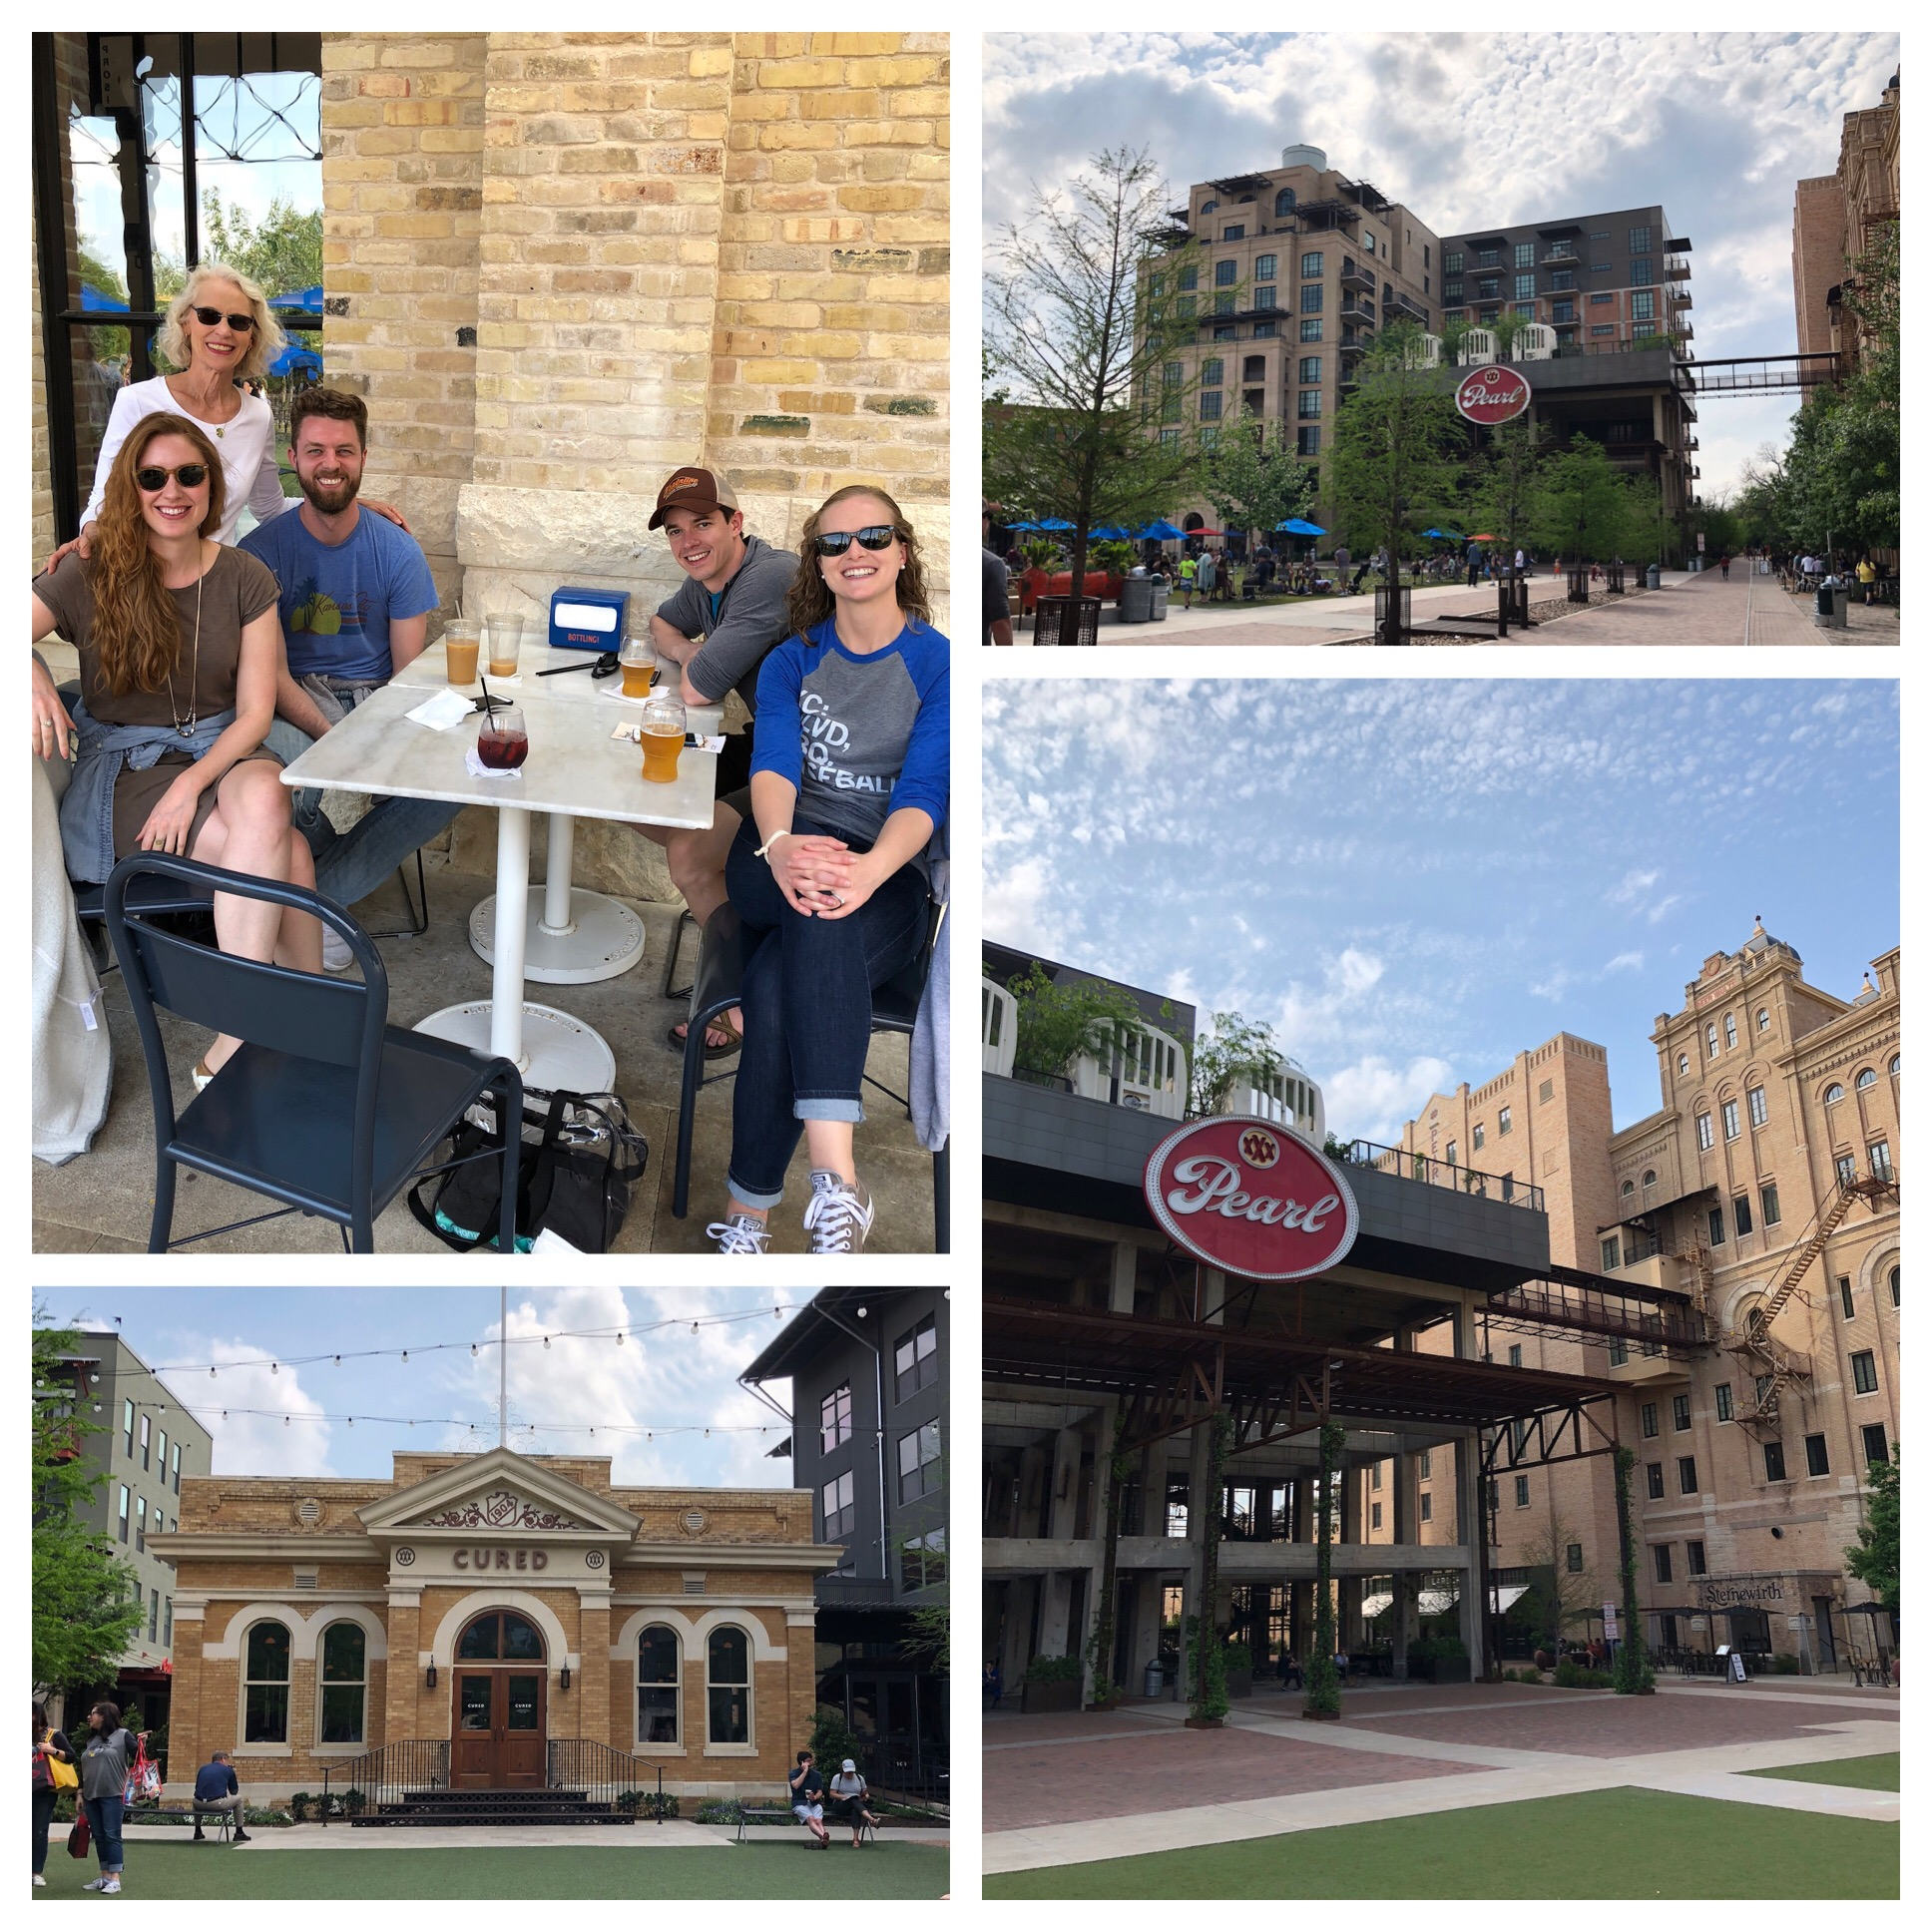 Lots of people out and about just enjoying the libations and beautiful weather.